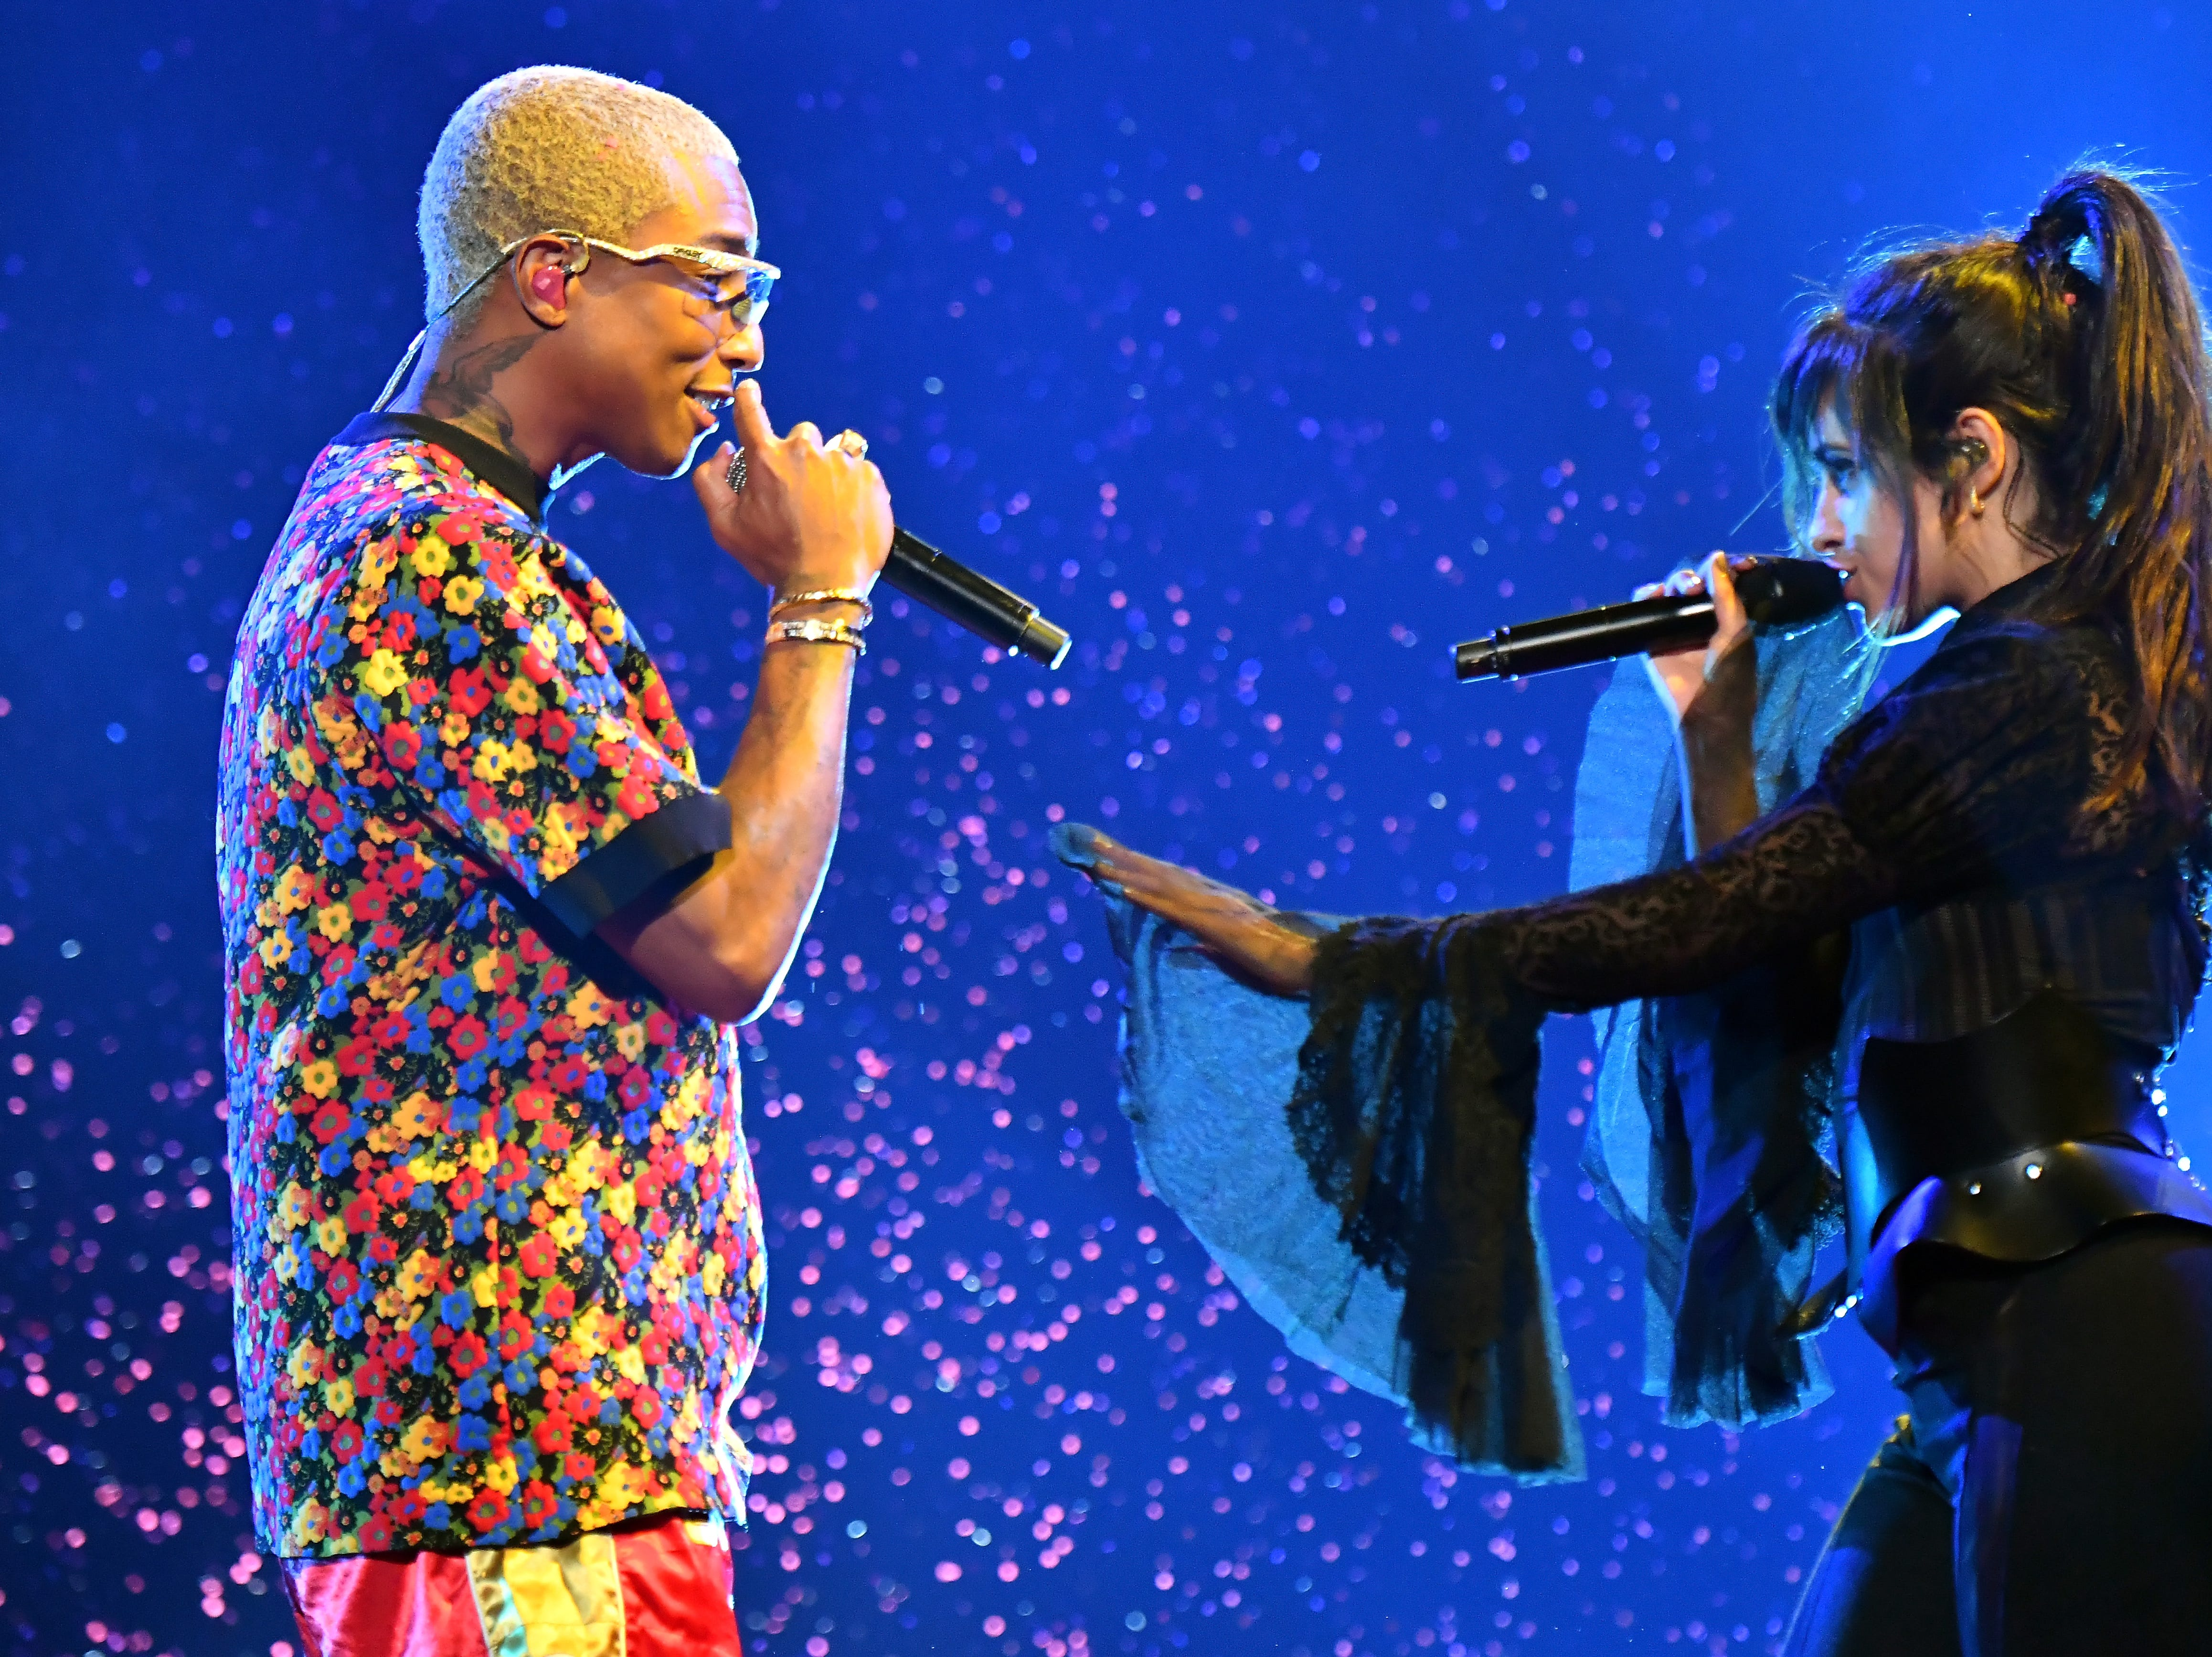 May 20:  Pharrell and Camila Cabello also perform at the Billboard Music Awards.